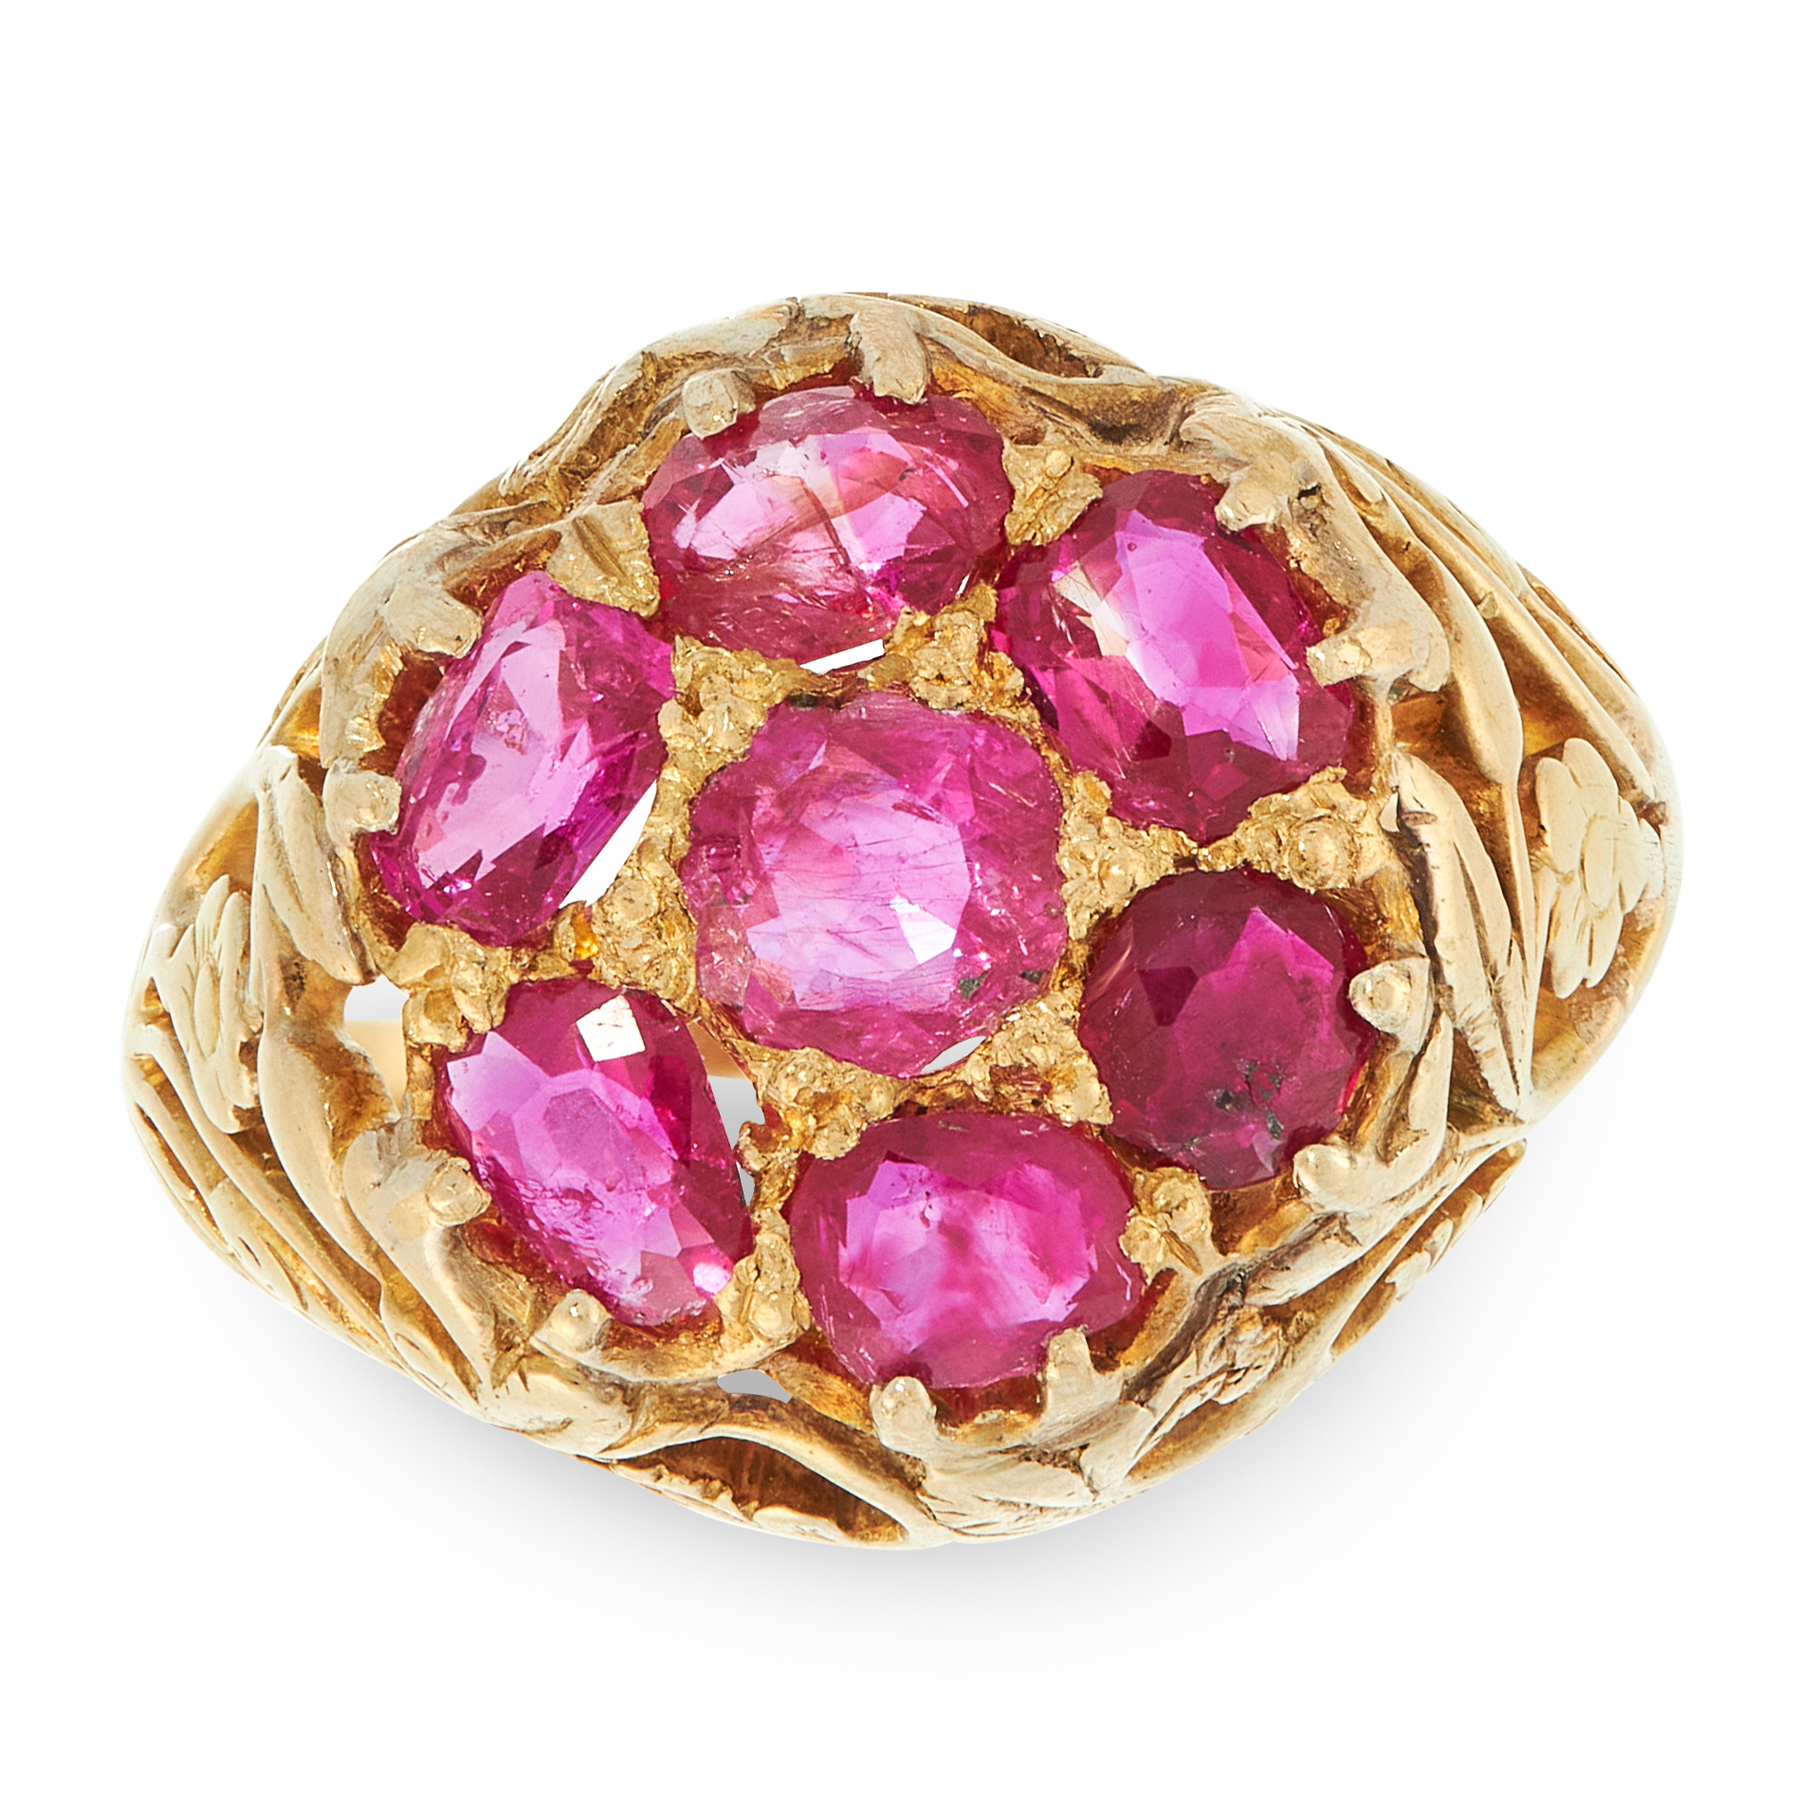 AN ANTIQUE RUBY DRESS RING, LATE 19TH CENTURY in yellow gold, set with a cluster of seven cushion